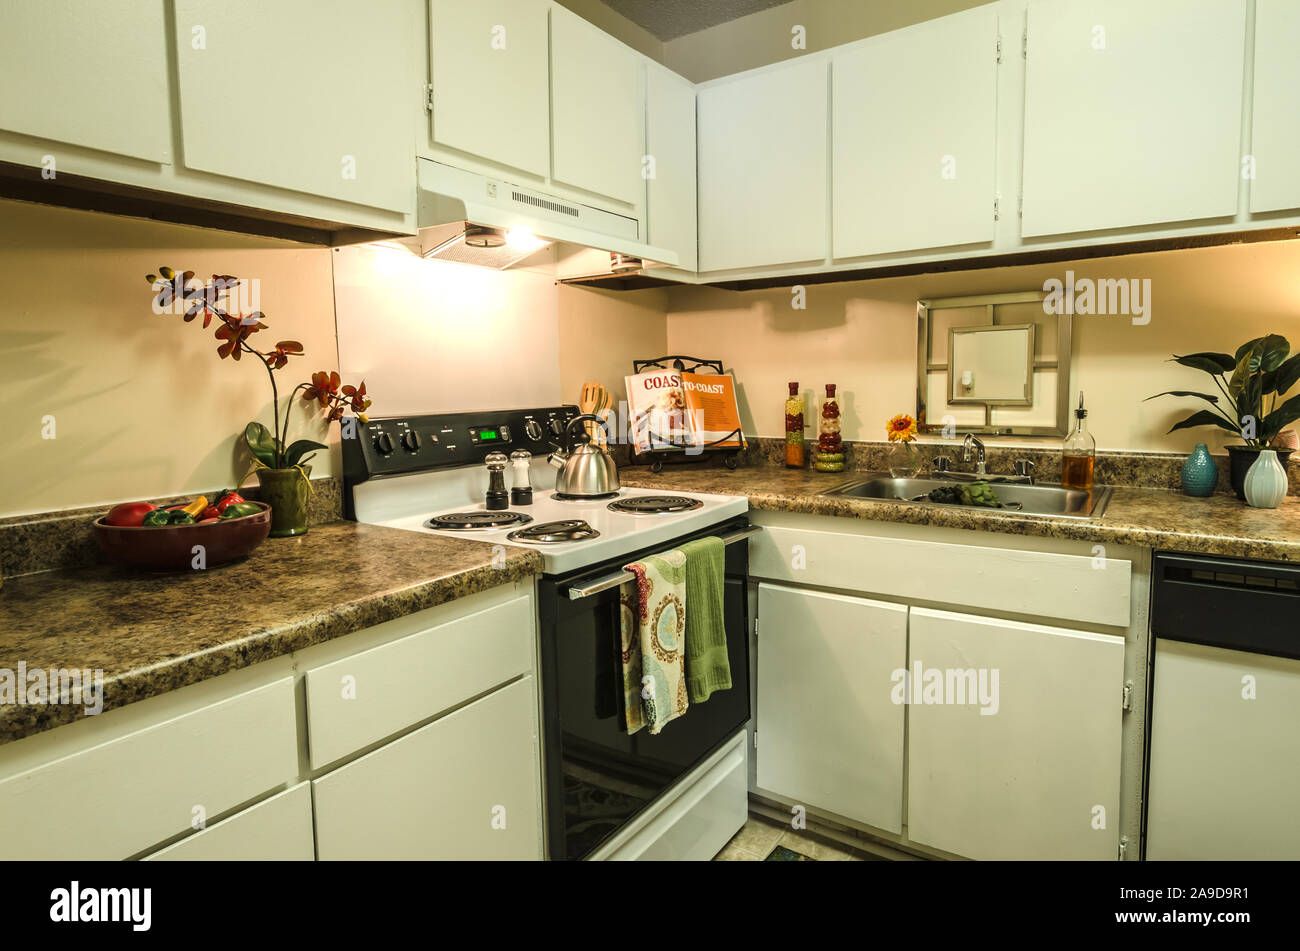 The kitchen at Autumn Woods Apartments on Foreman Road in ...